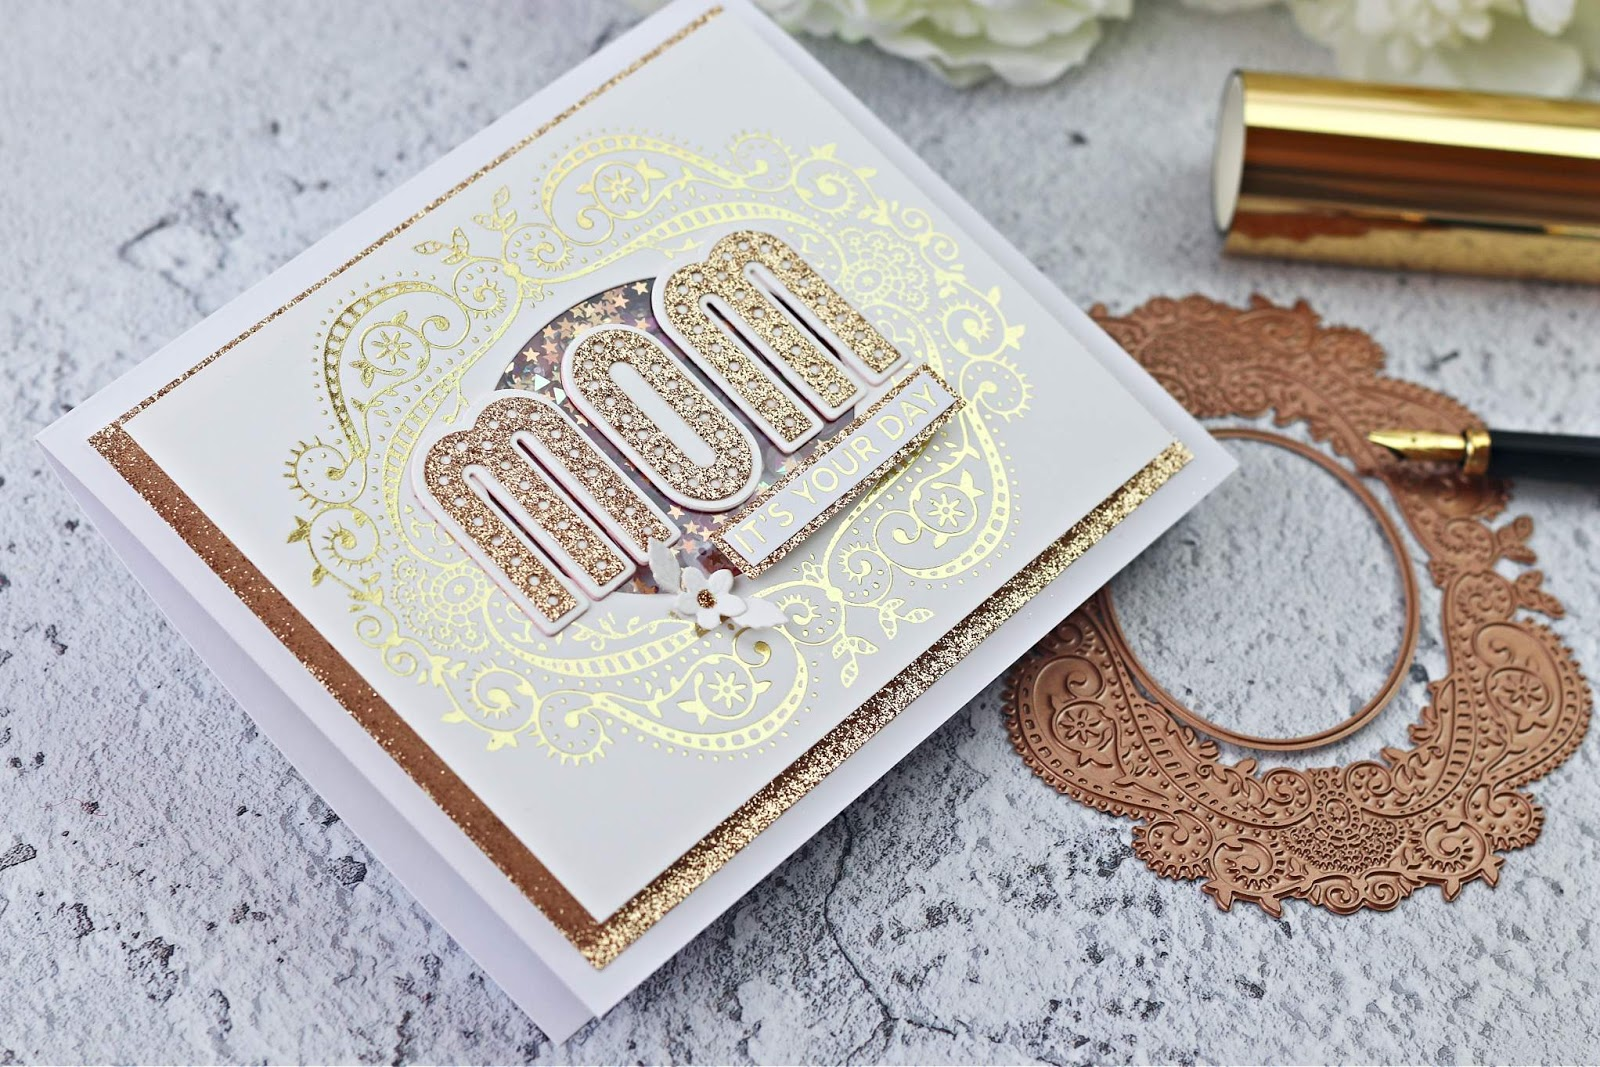 HAPPY MOTHER'S DAY + SPELLBINDERS GLIMMER HOT FOIL KIT OF THE MONTH